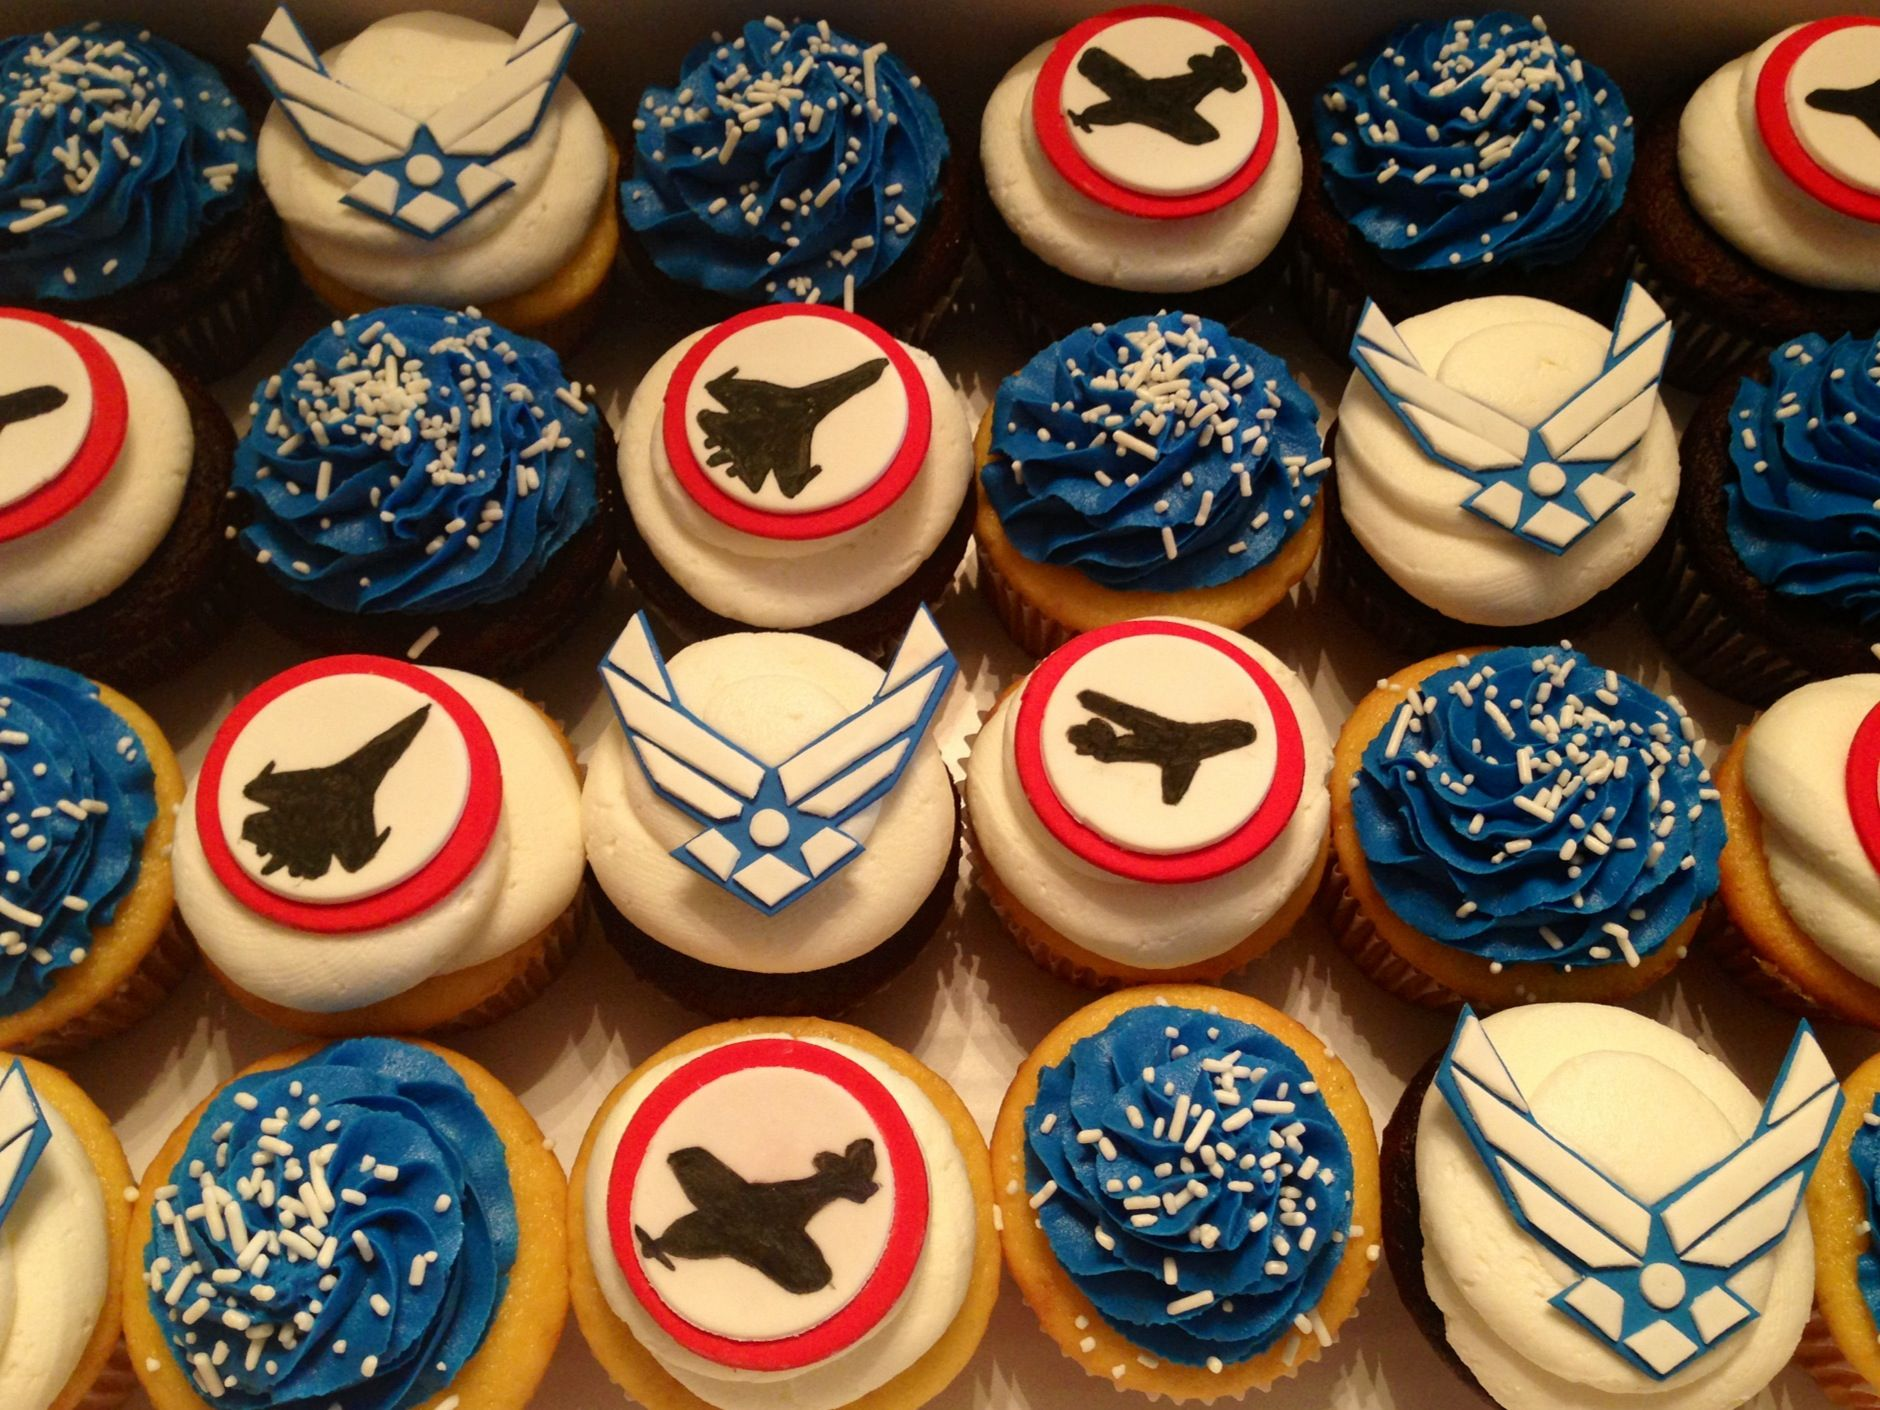 United States Air Force cupcakes made by Scrumdiliumcious